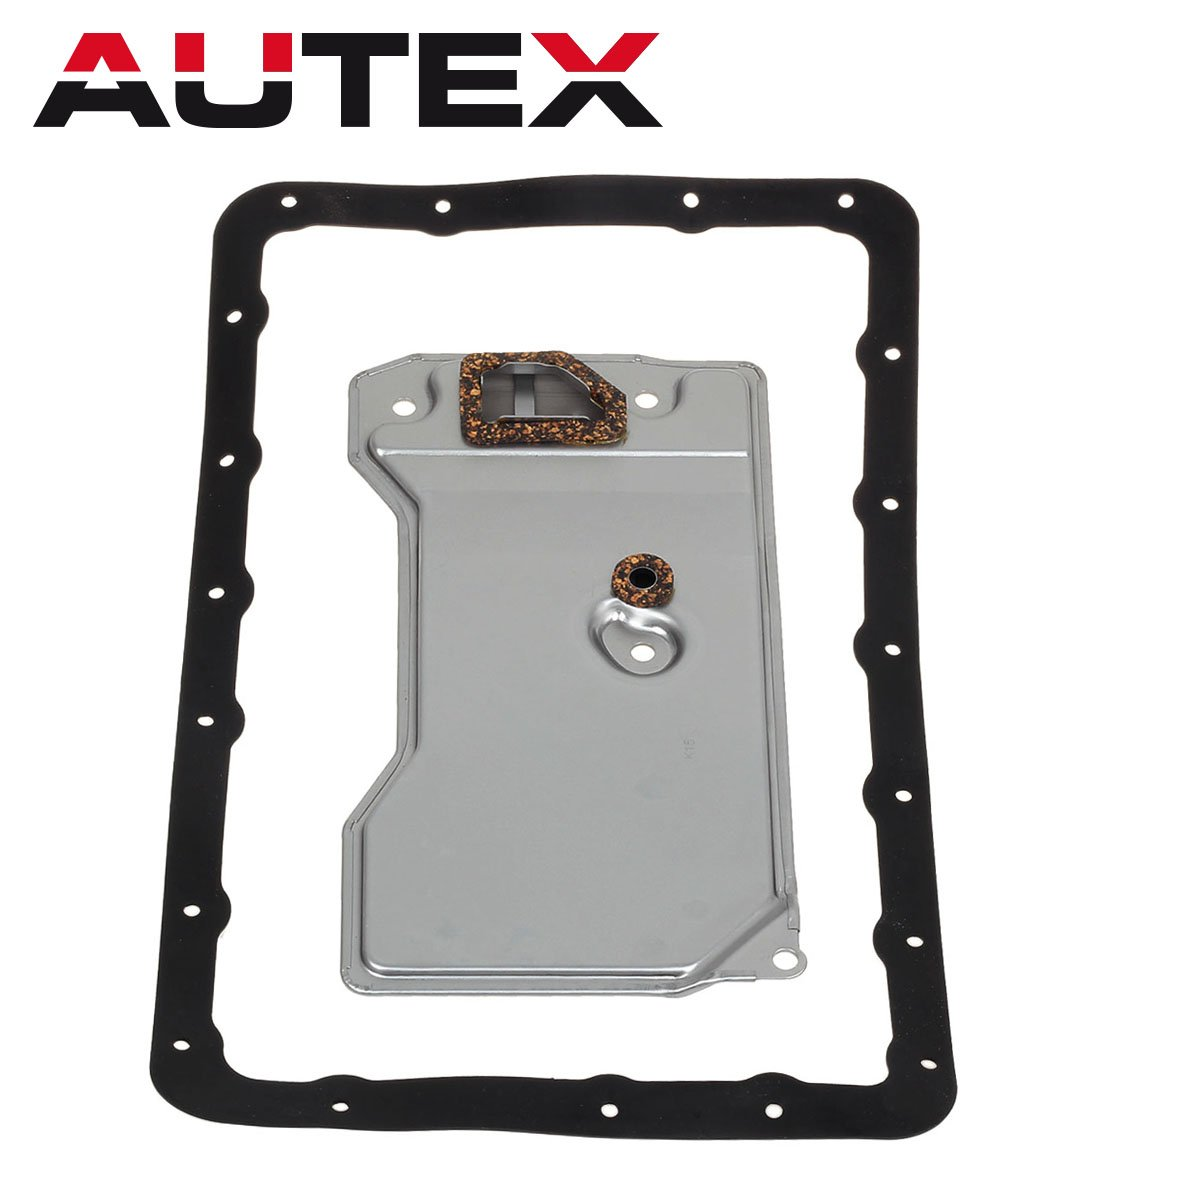 AUTEX A340H 83504032 Automatic Transmission Fluid Filter Gasket Kit Compatible With 1987 1988 1989 1990 Jeep Cherokee Comanchee Wagoneer 4.0L